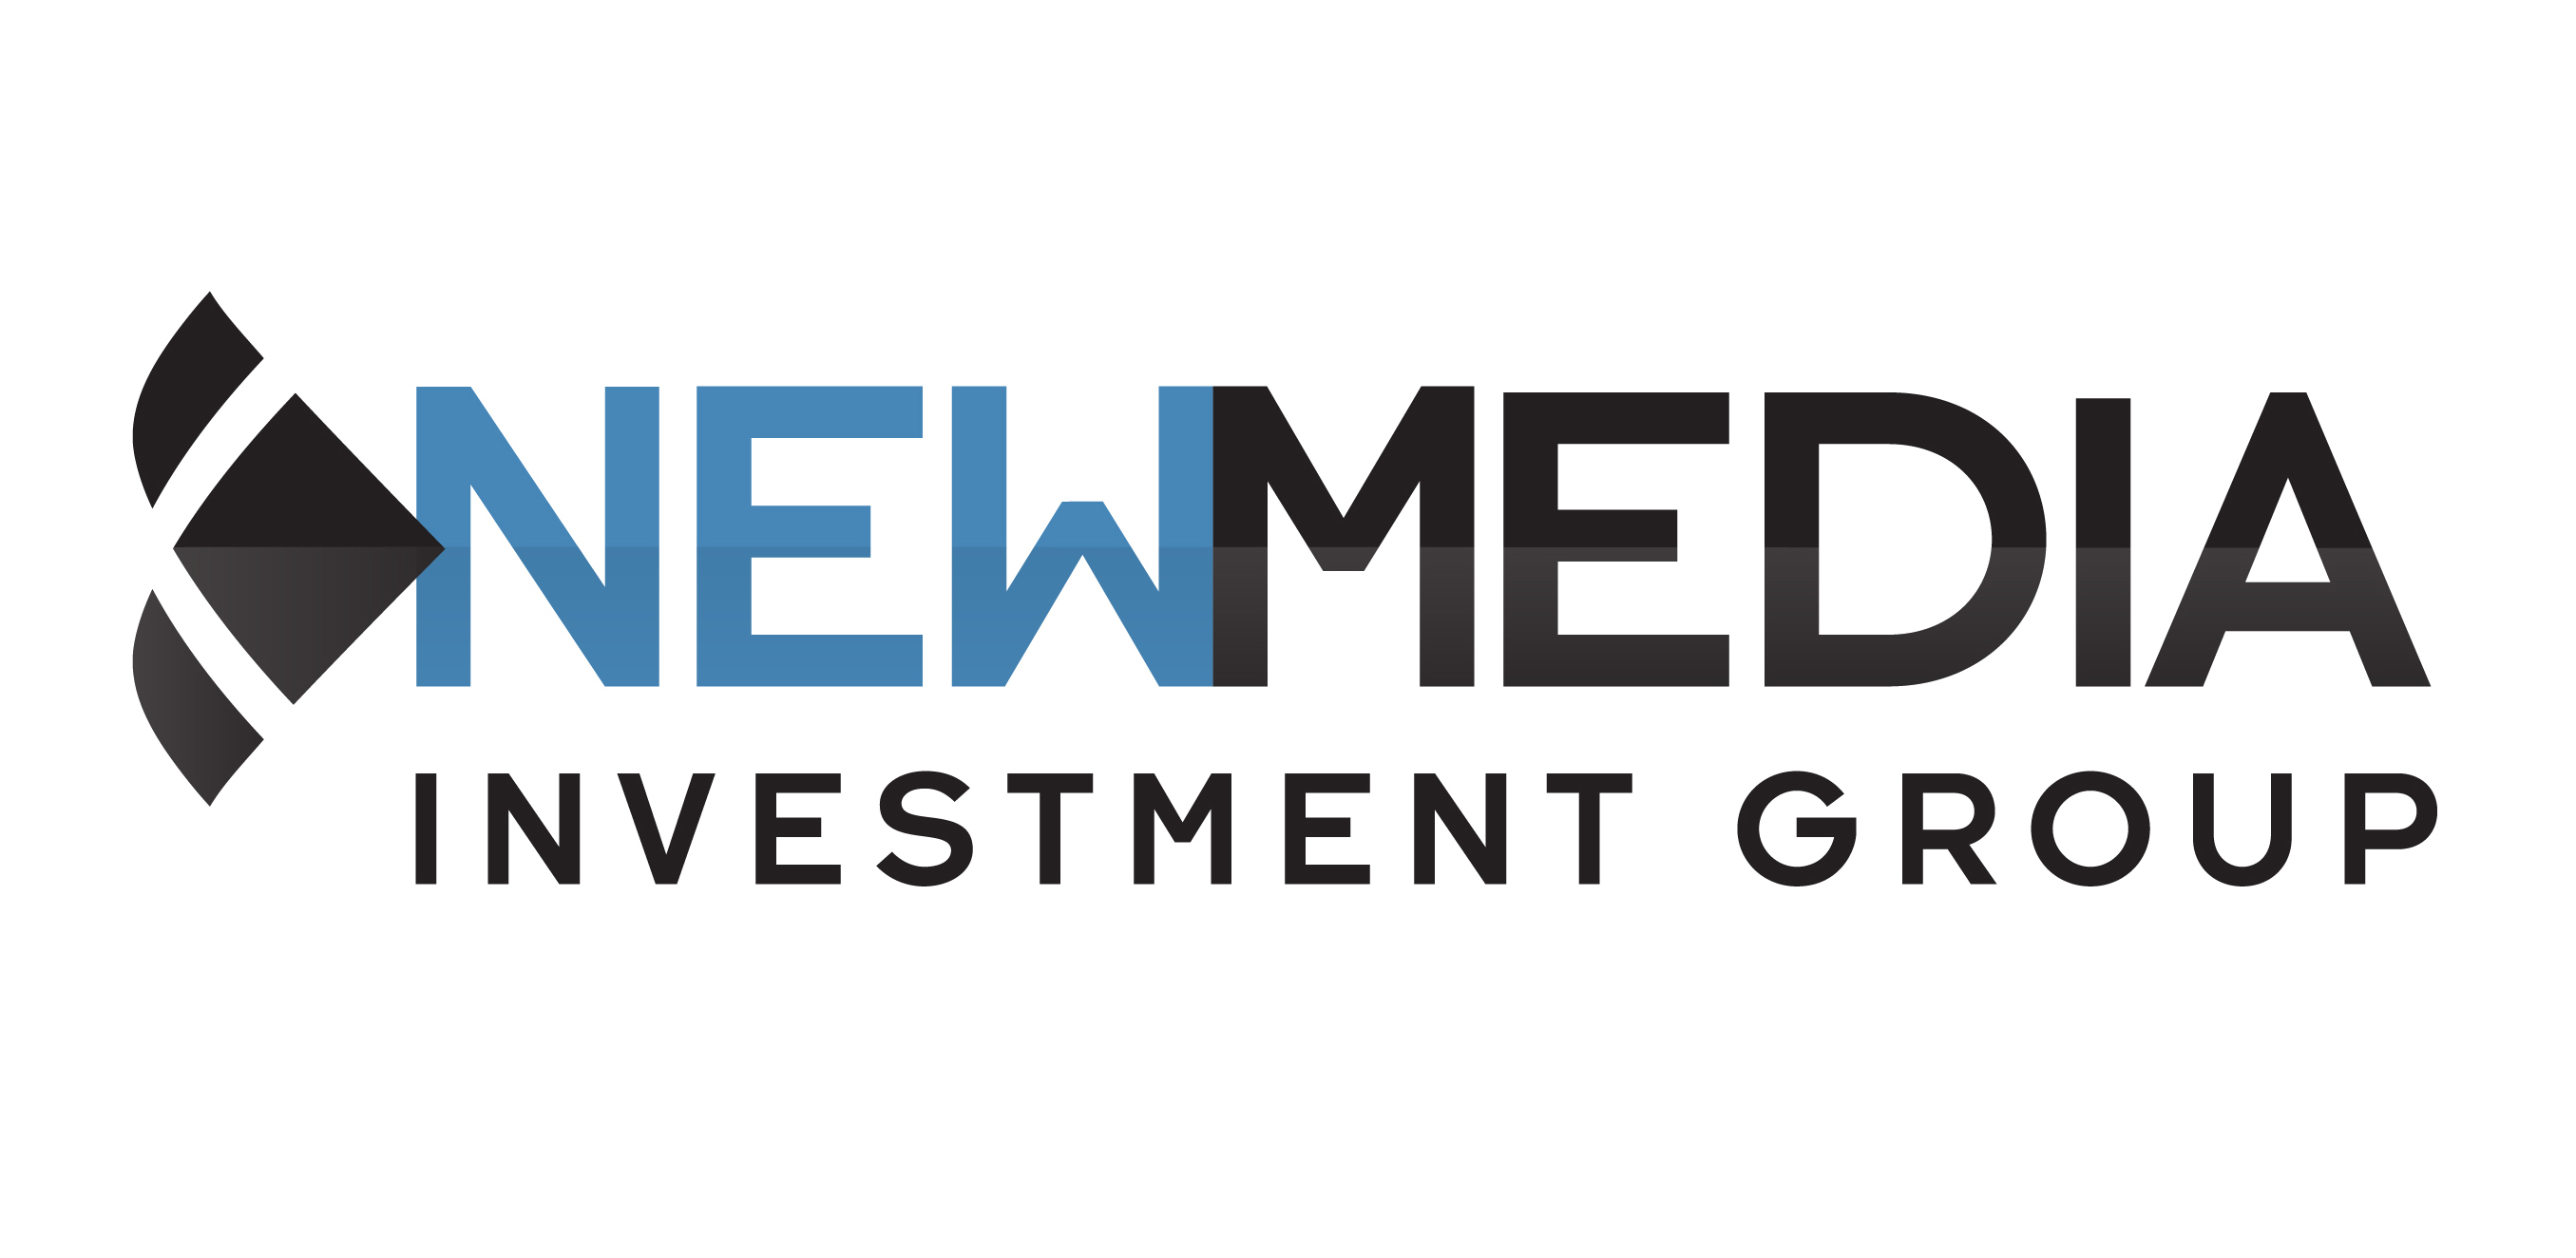 New Media Investment Group to Acquire Gannett | Business Wire